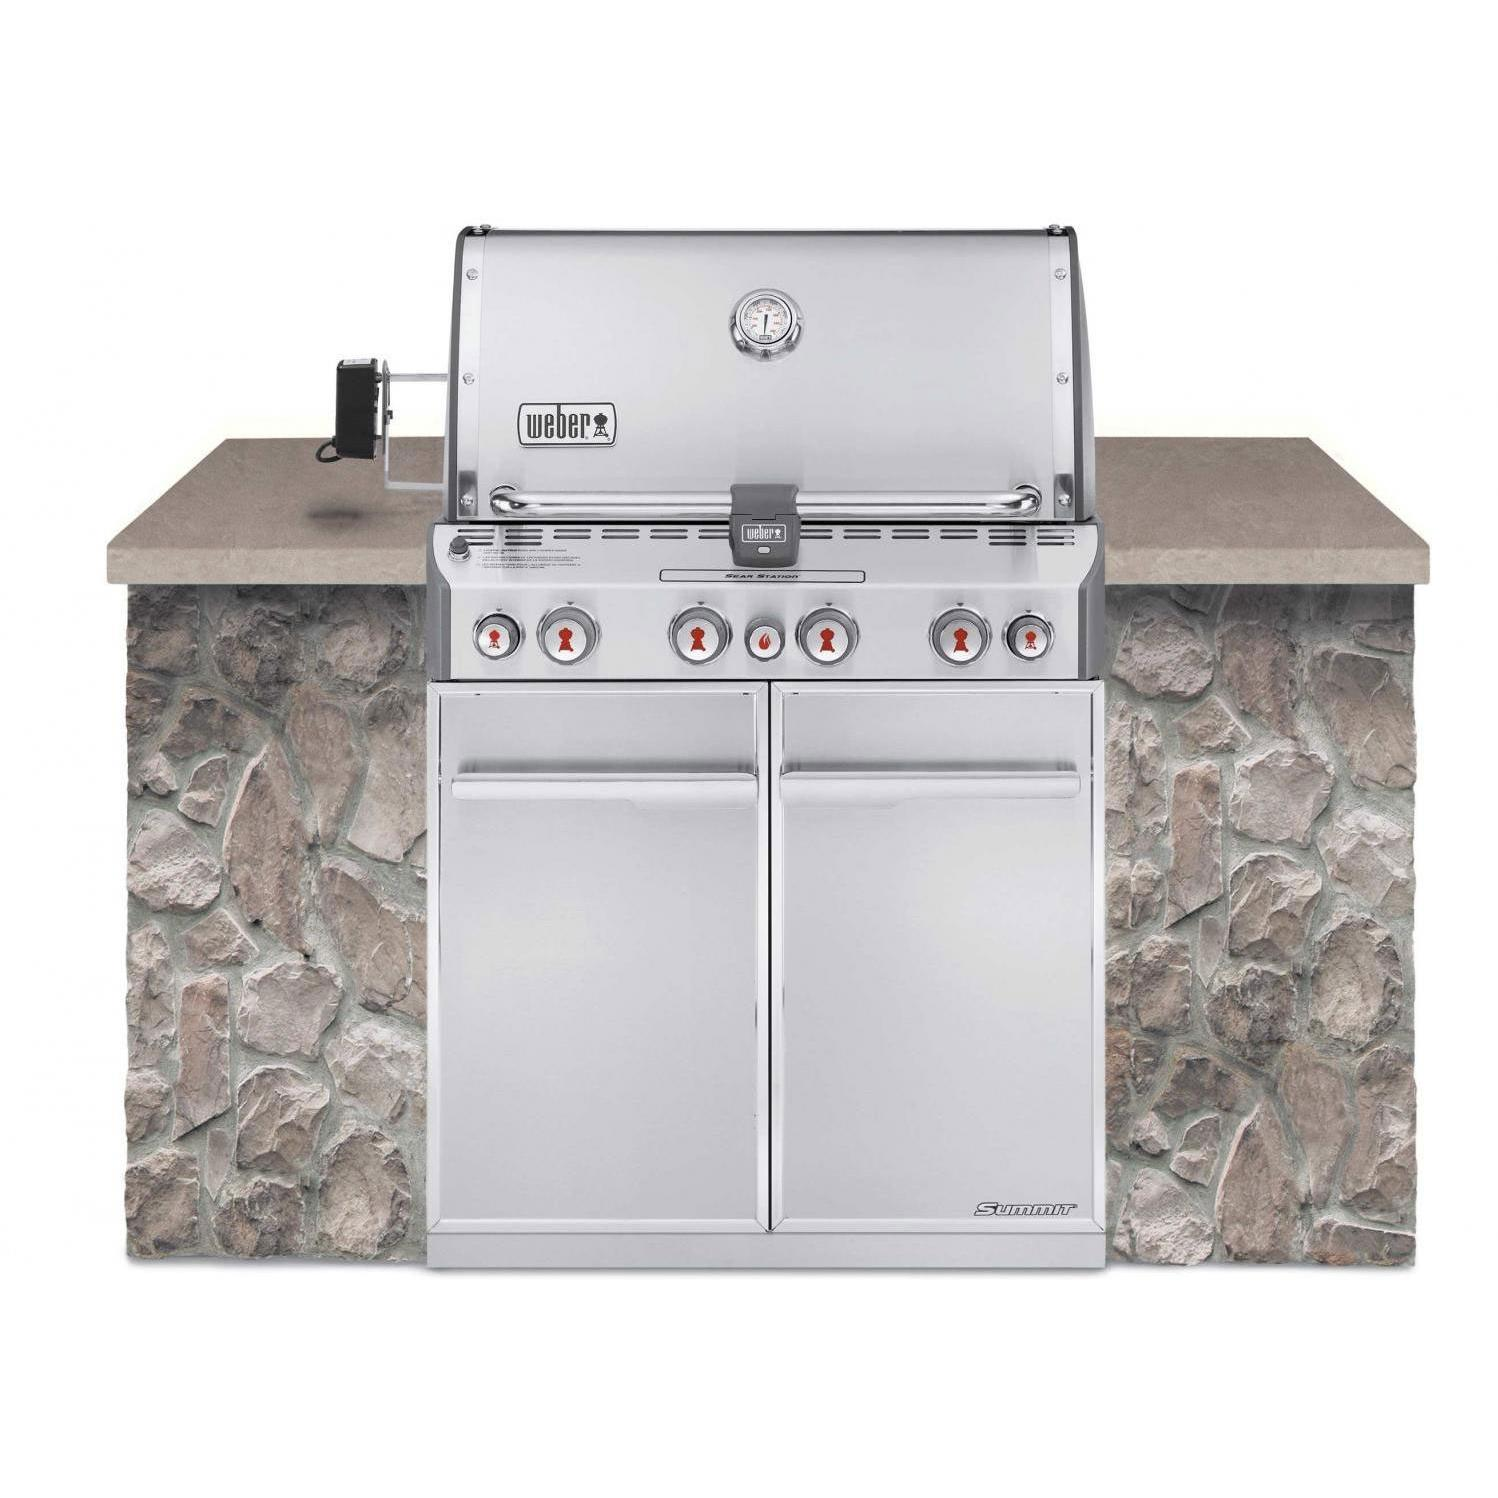 Weber Summit S-460 Built-In Propane Gas Grill With Rotisserie & Sear Burner 2786298